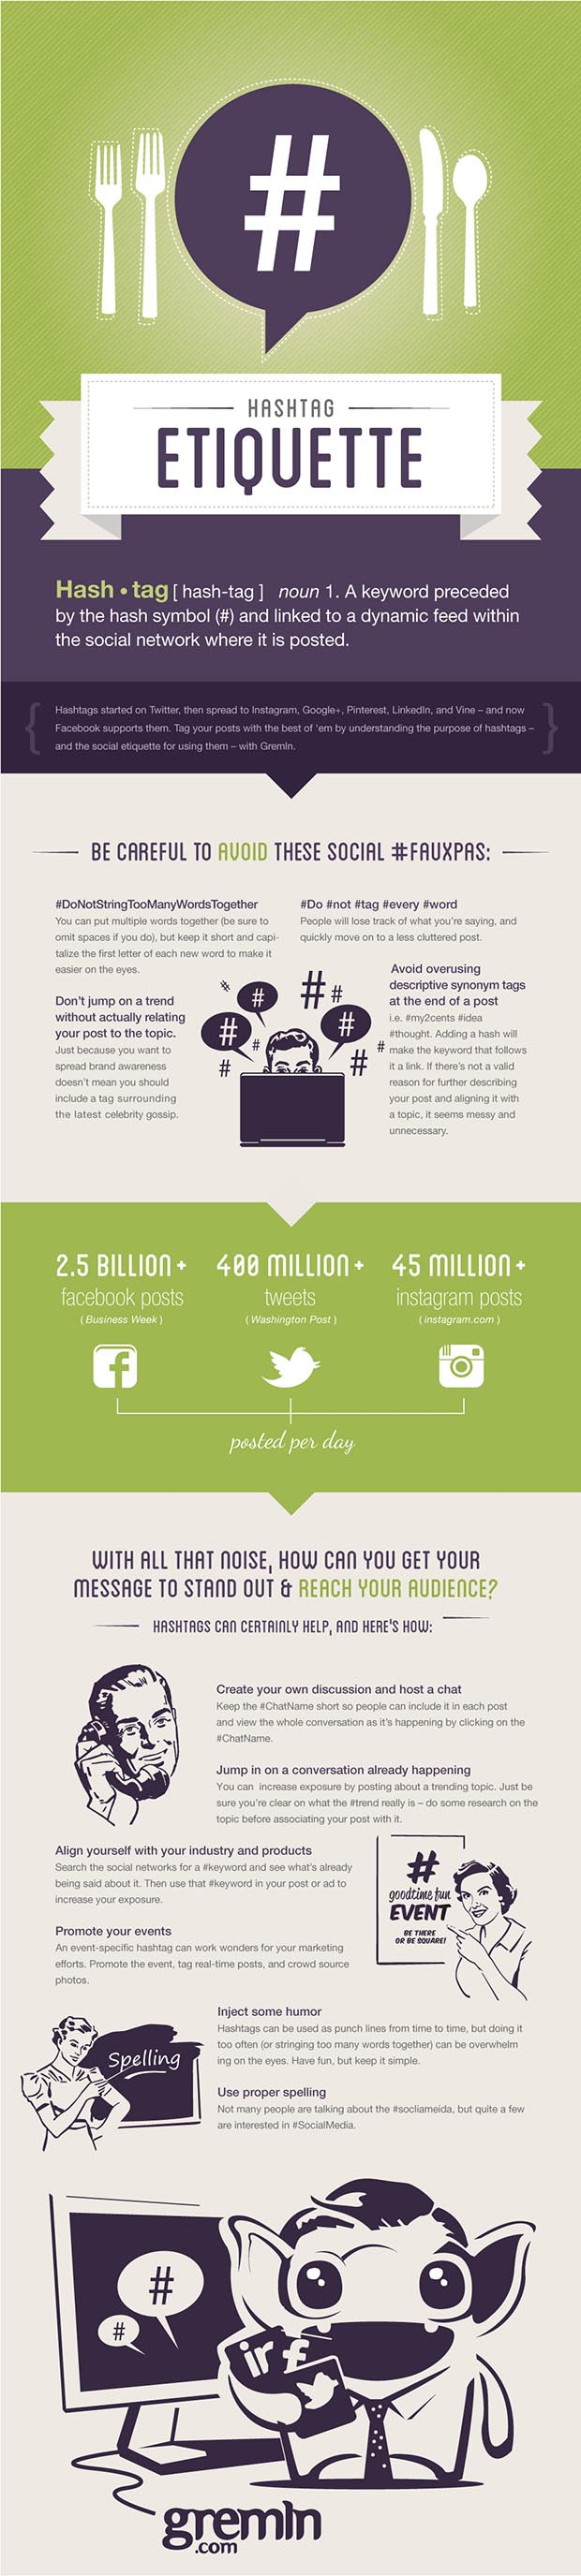 How to Use Hashtags with Etiquitte [infographic]